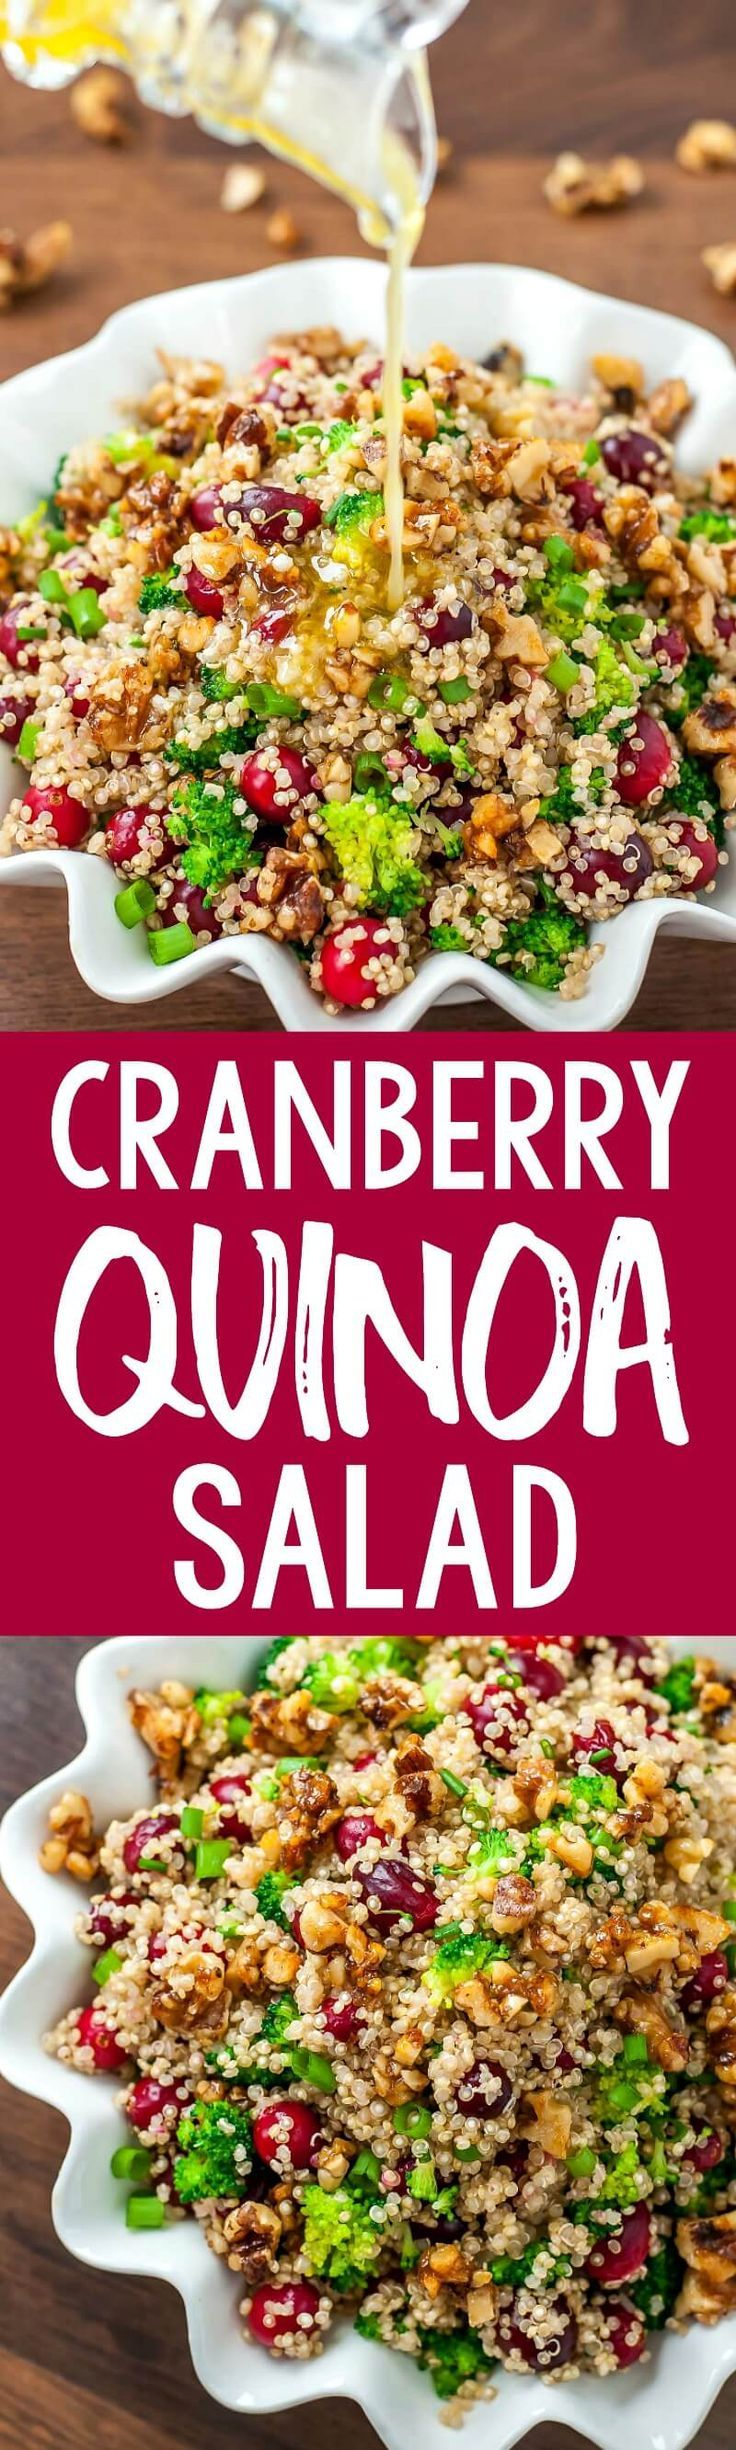 This Healthy Cranberry Quinoa Salad is gluten-free and totally tasty! #healthy #glutenfree #quinoa #salad